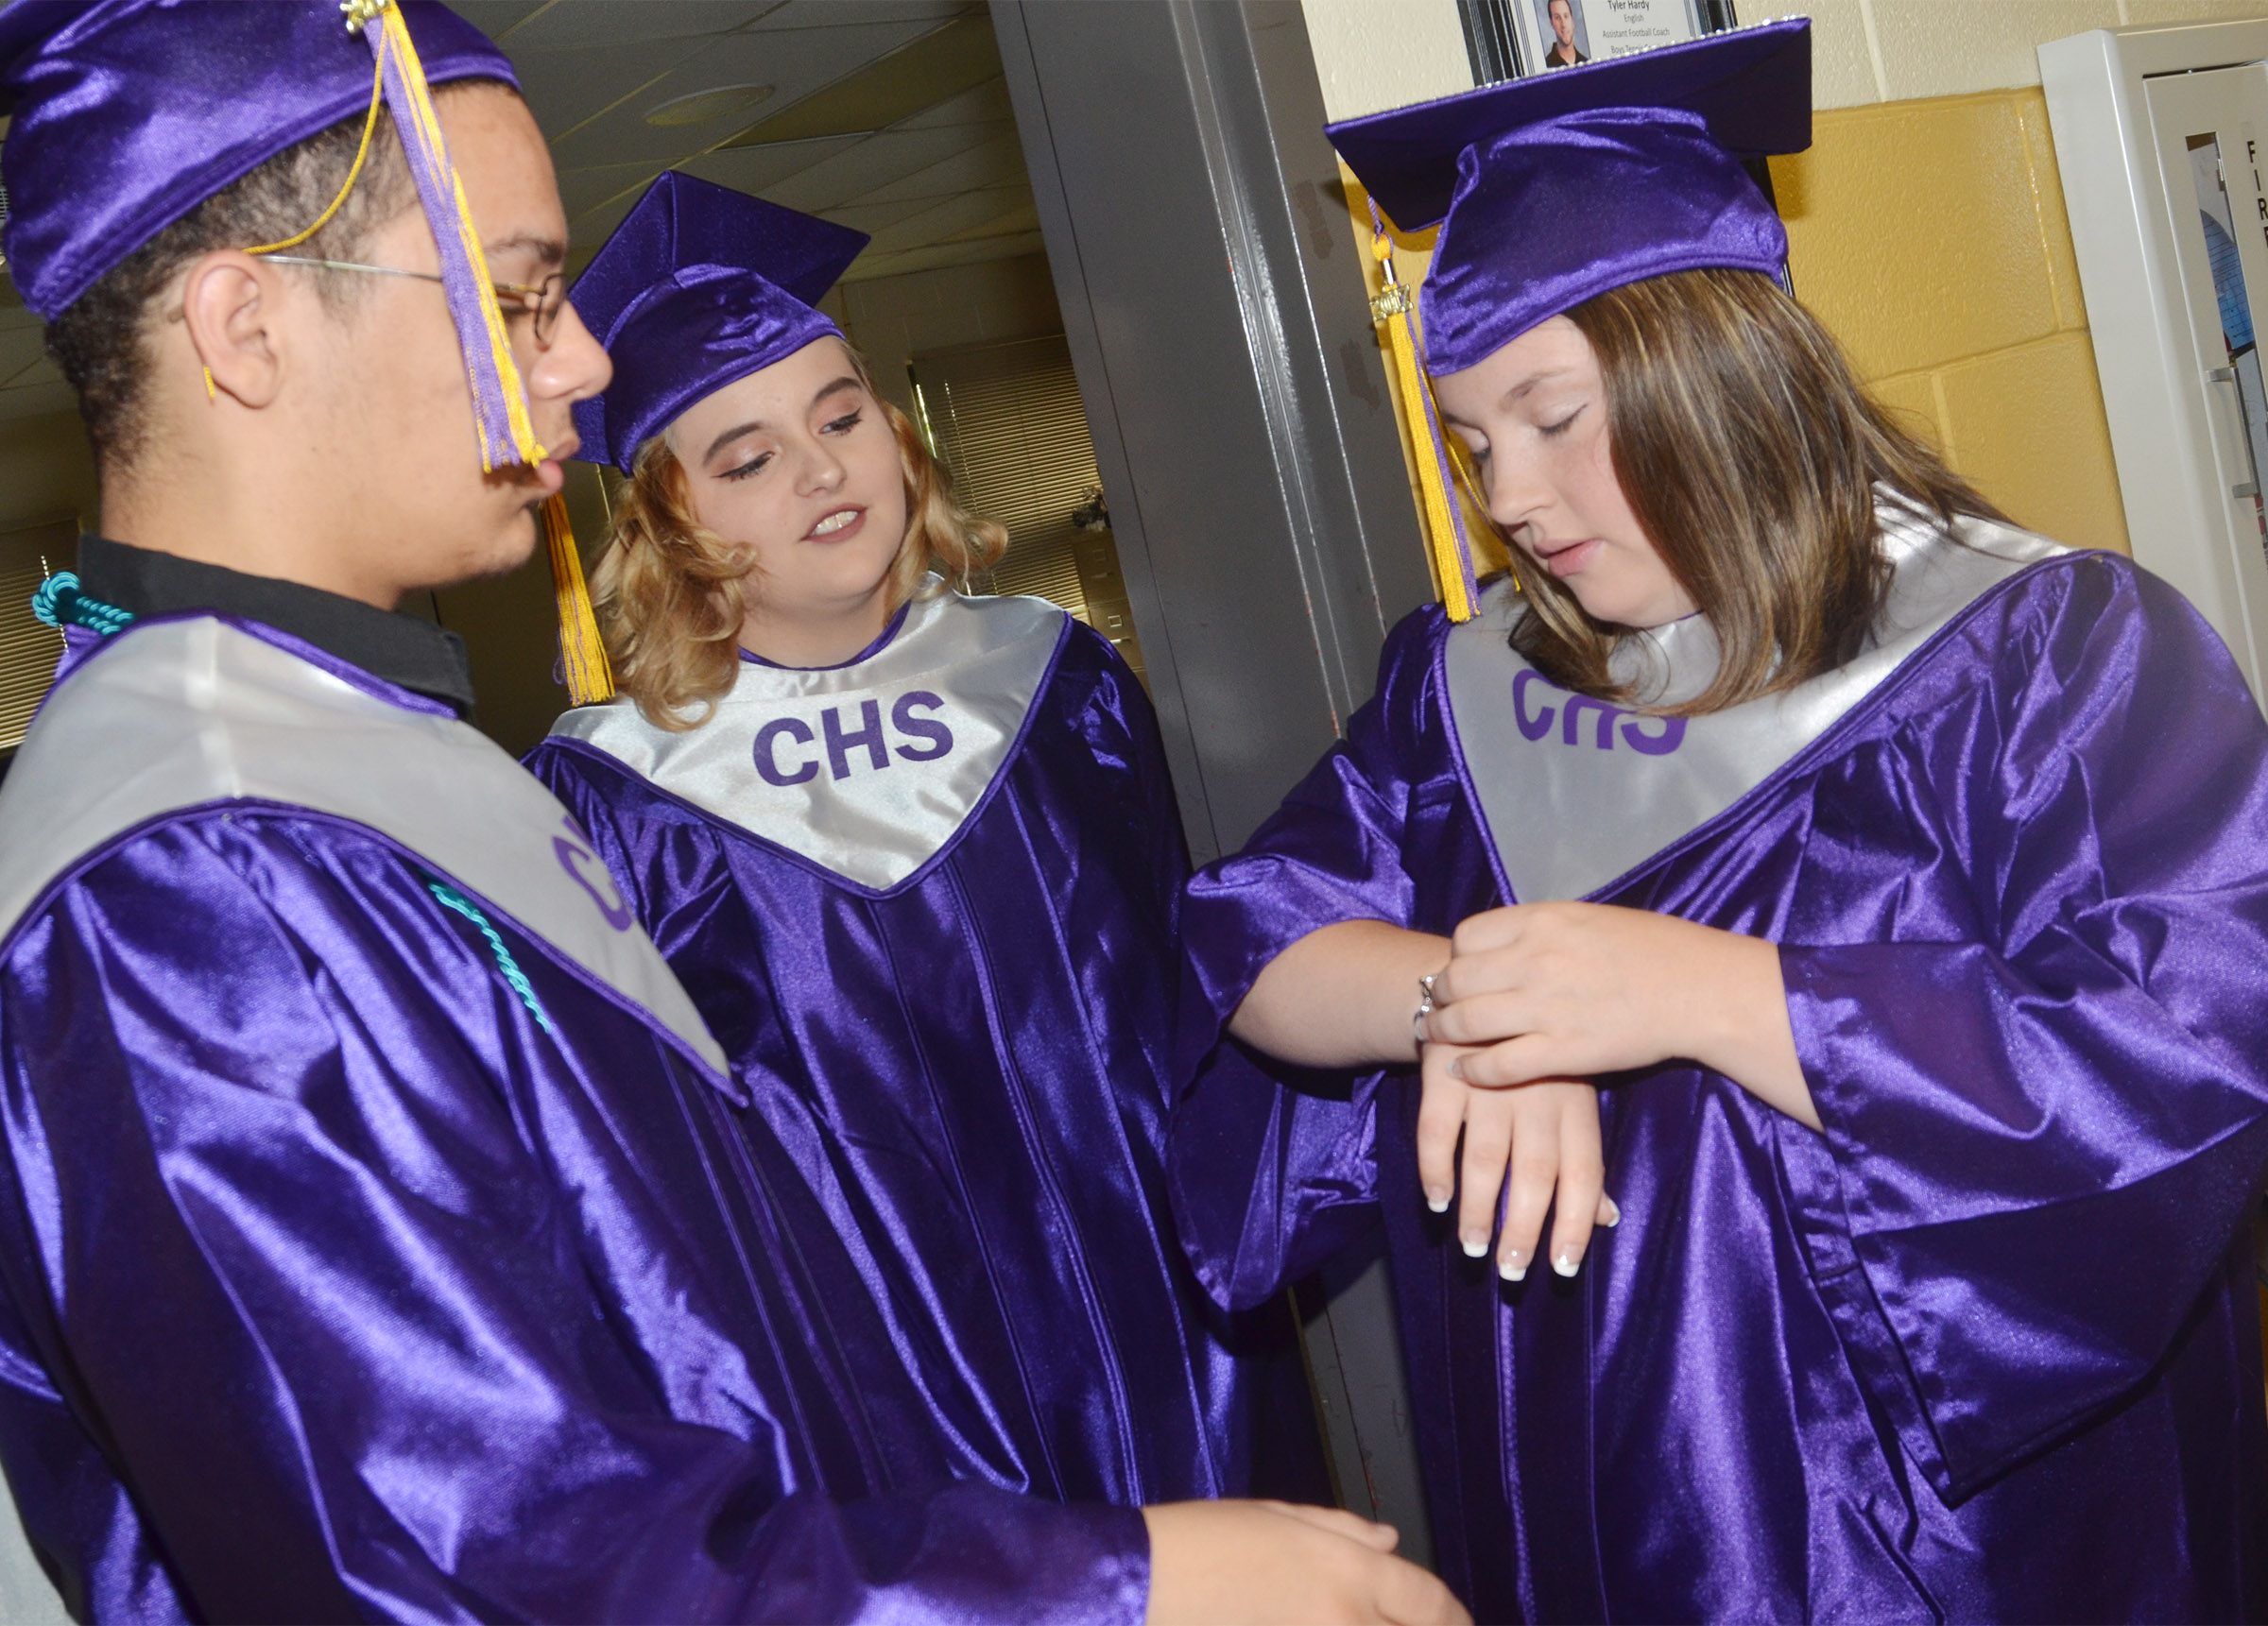 From left, CHS seniors Michael Porter, Cassie Pendleton and Shelby Page talk before graduation.